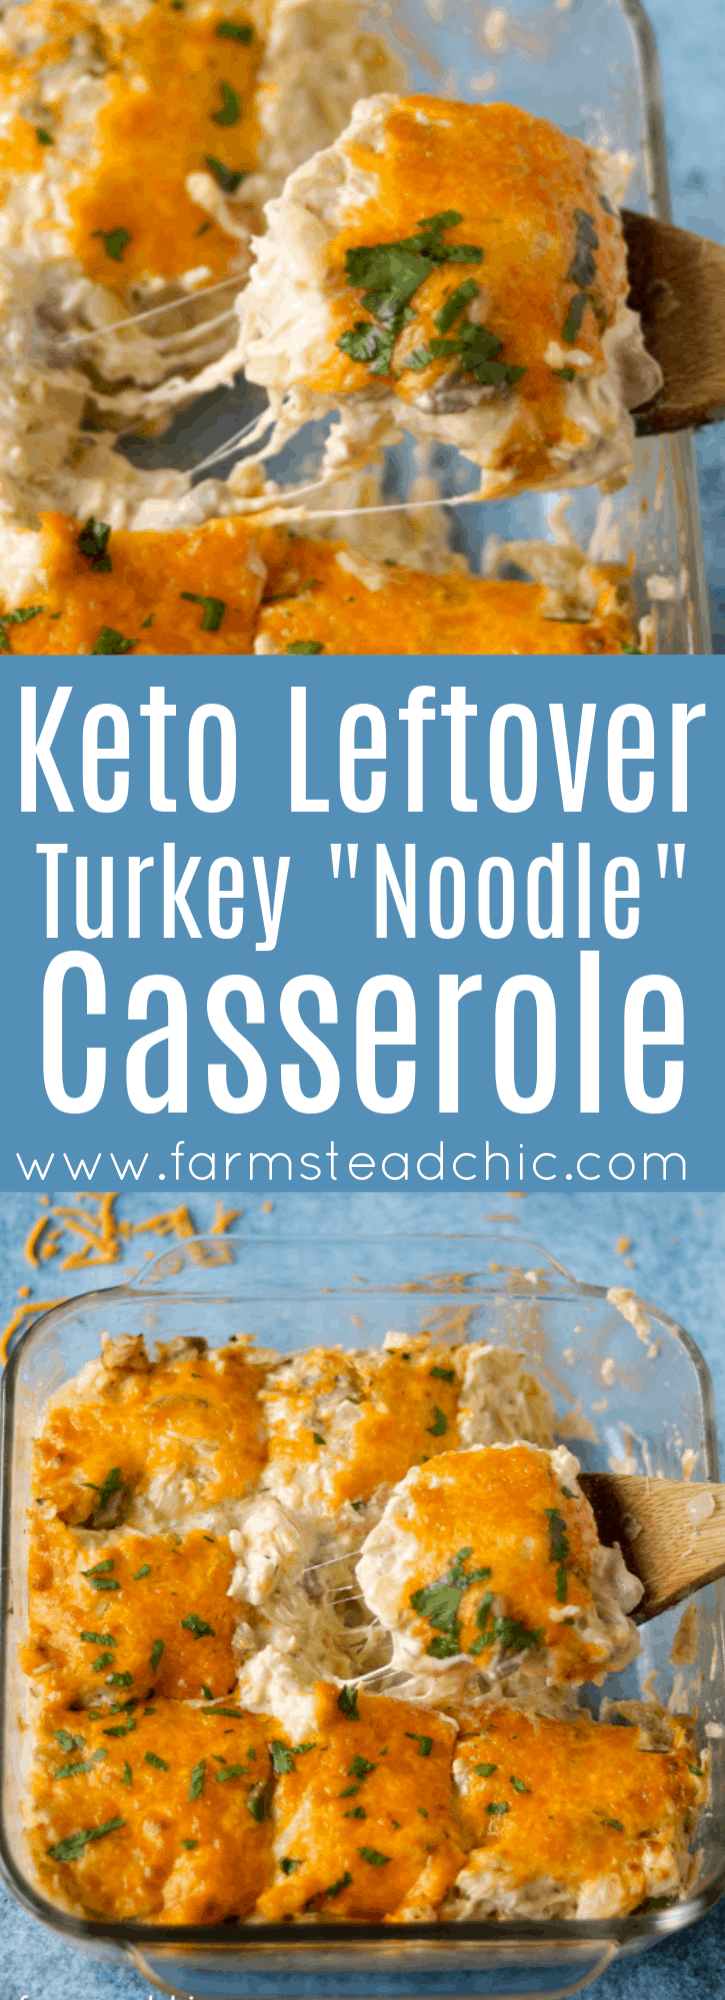 "Keto Leftover Turkey ""Noodle"" Casserole on a blue background Pinterest graphic"